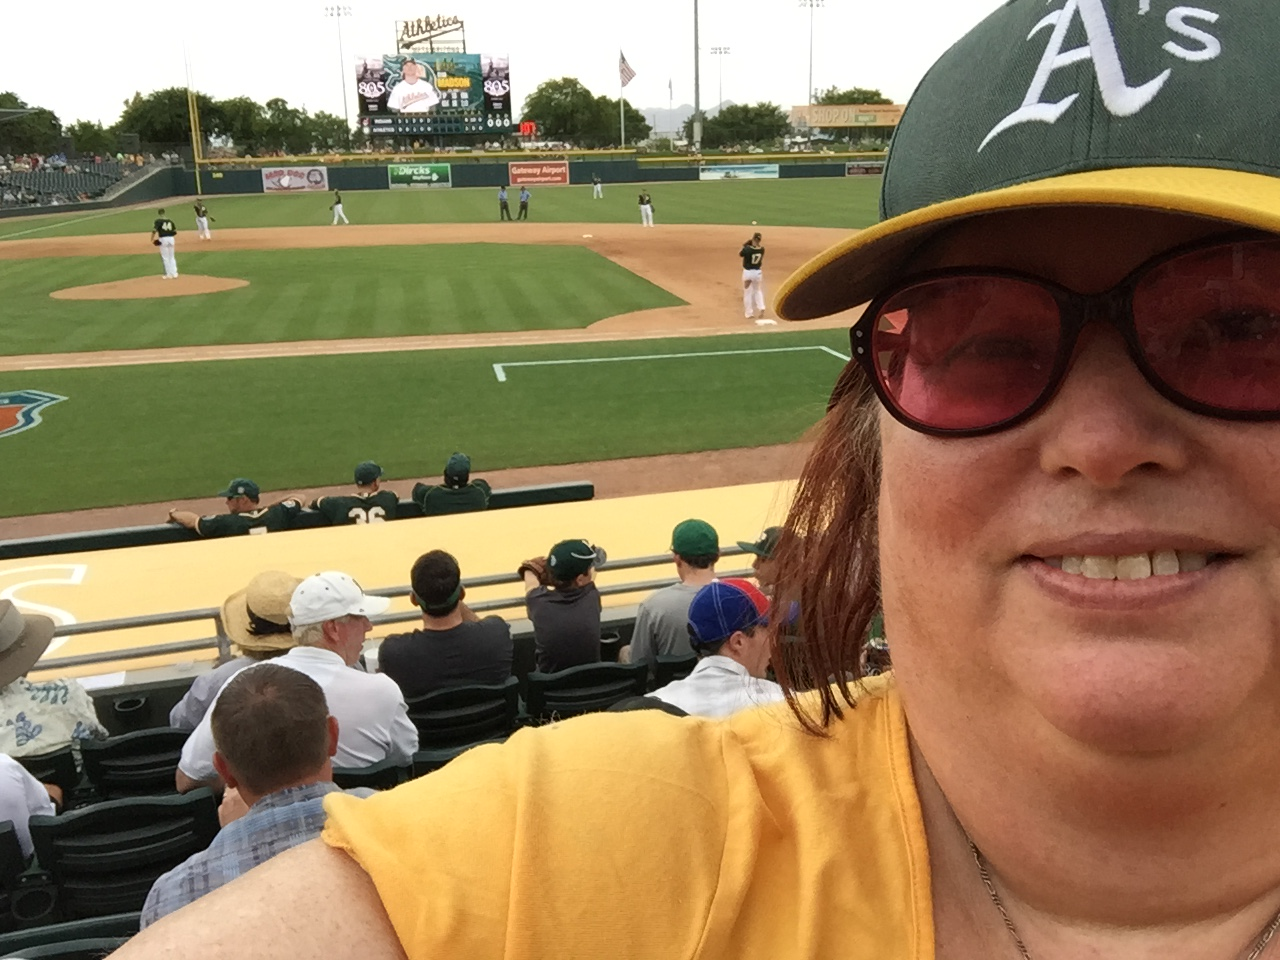 Spring Training selfie